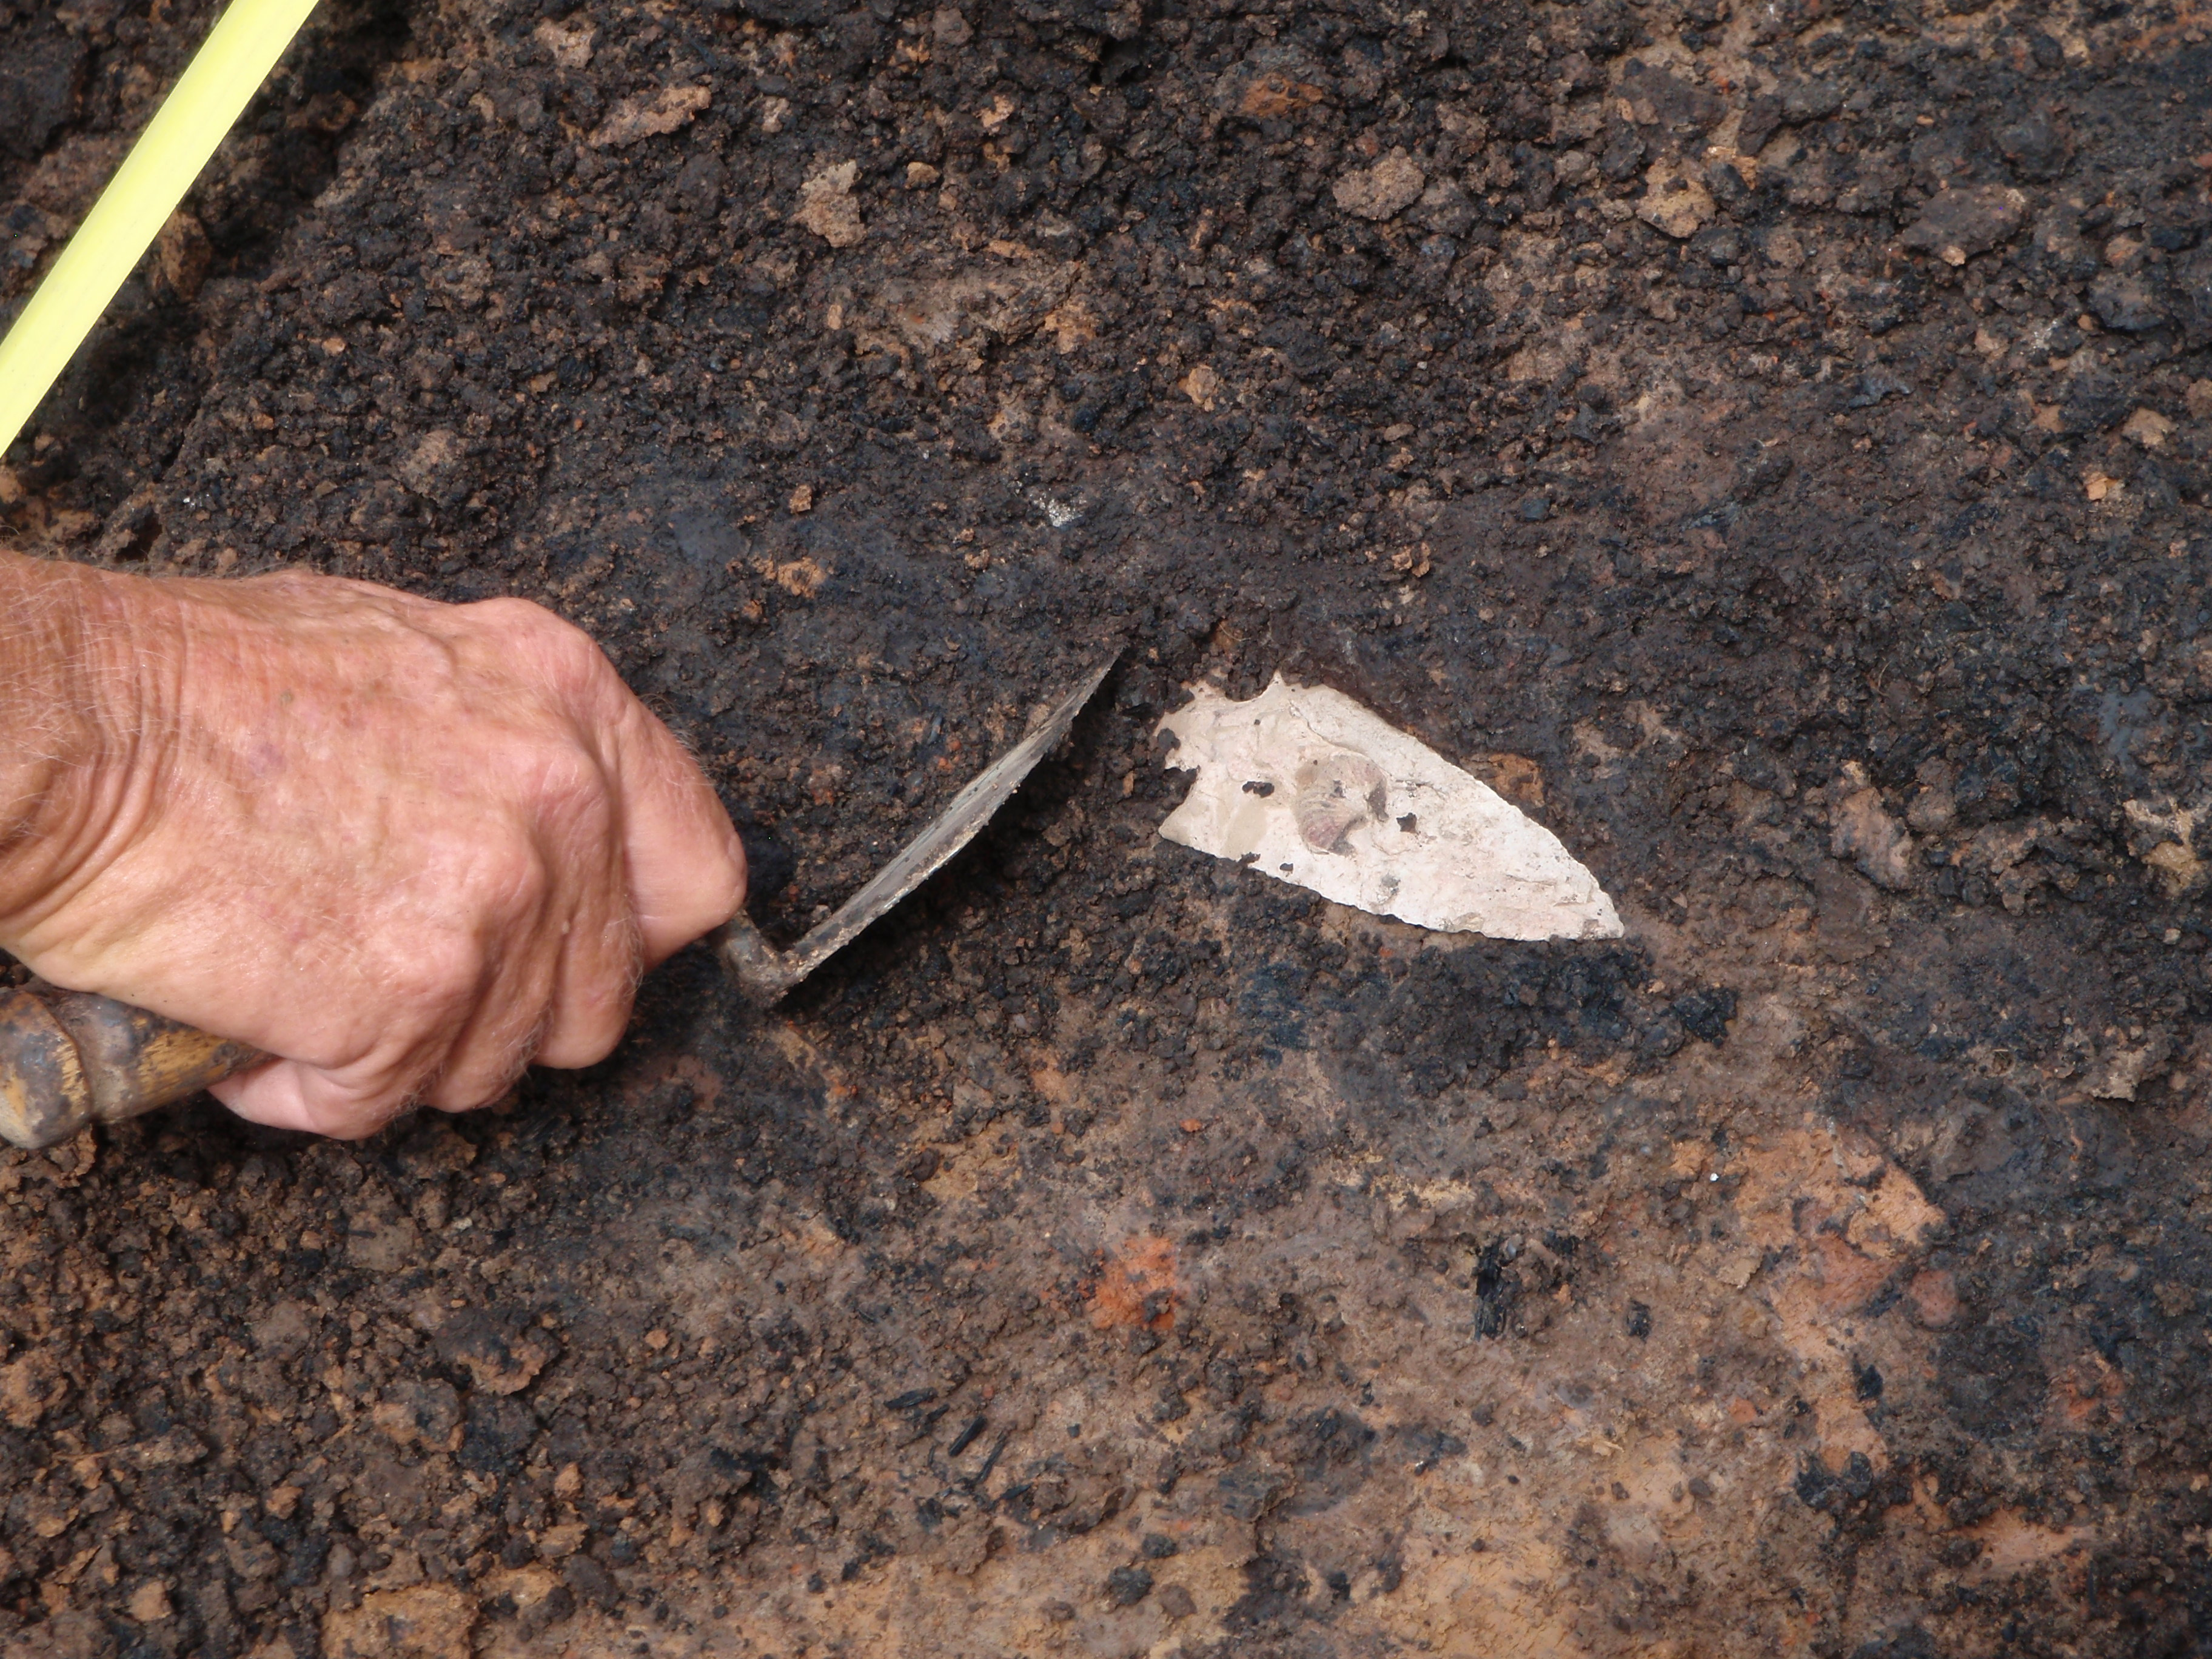 Uncovering a chert point